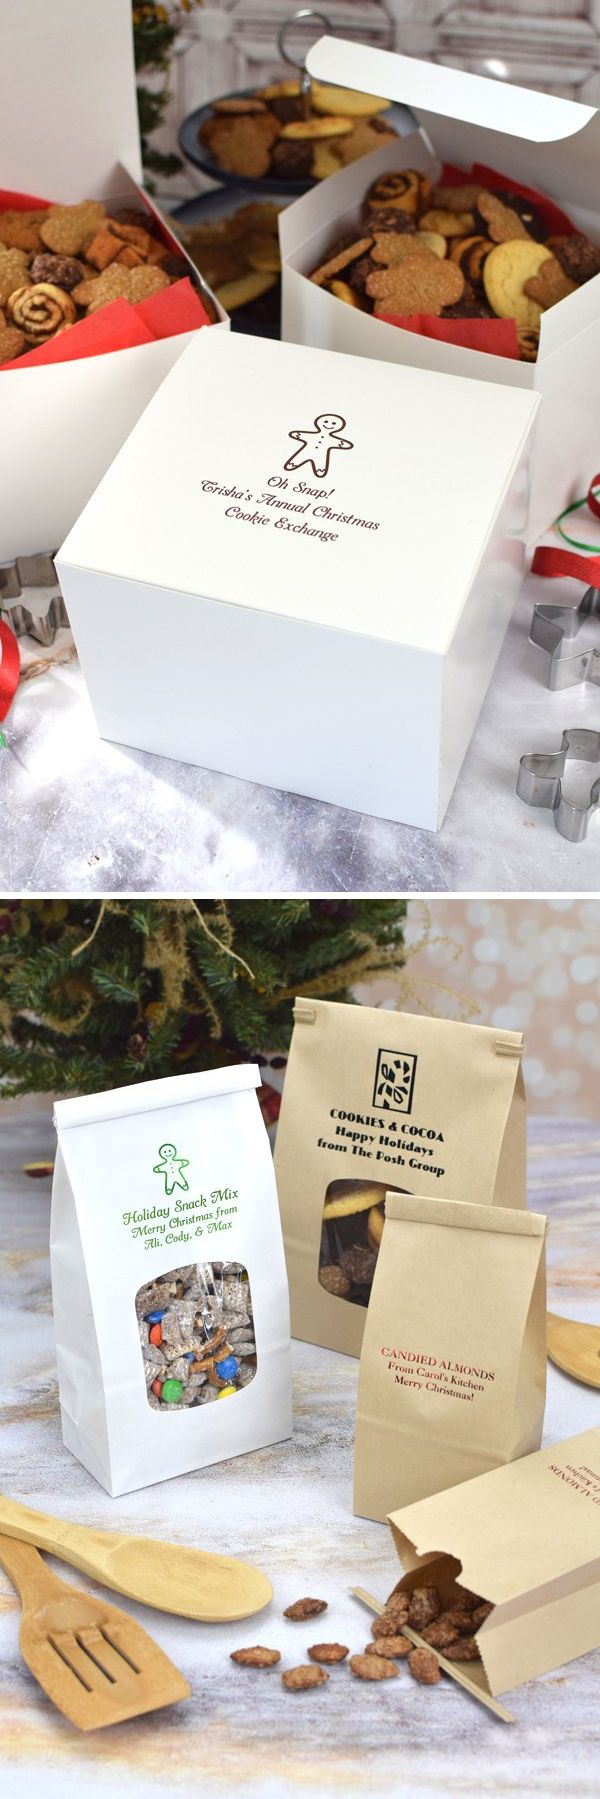 Gift wrapping ideas for home made baked goods - Personalized Christmas Party Decorations Gifts And Ideas